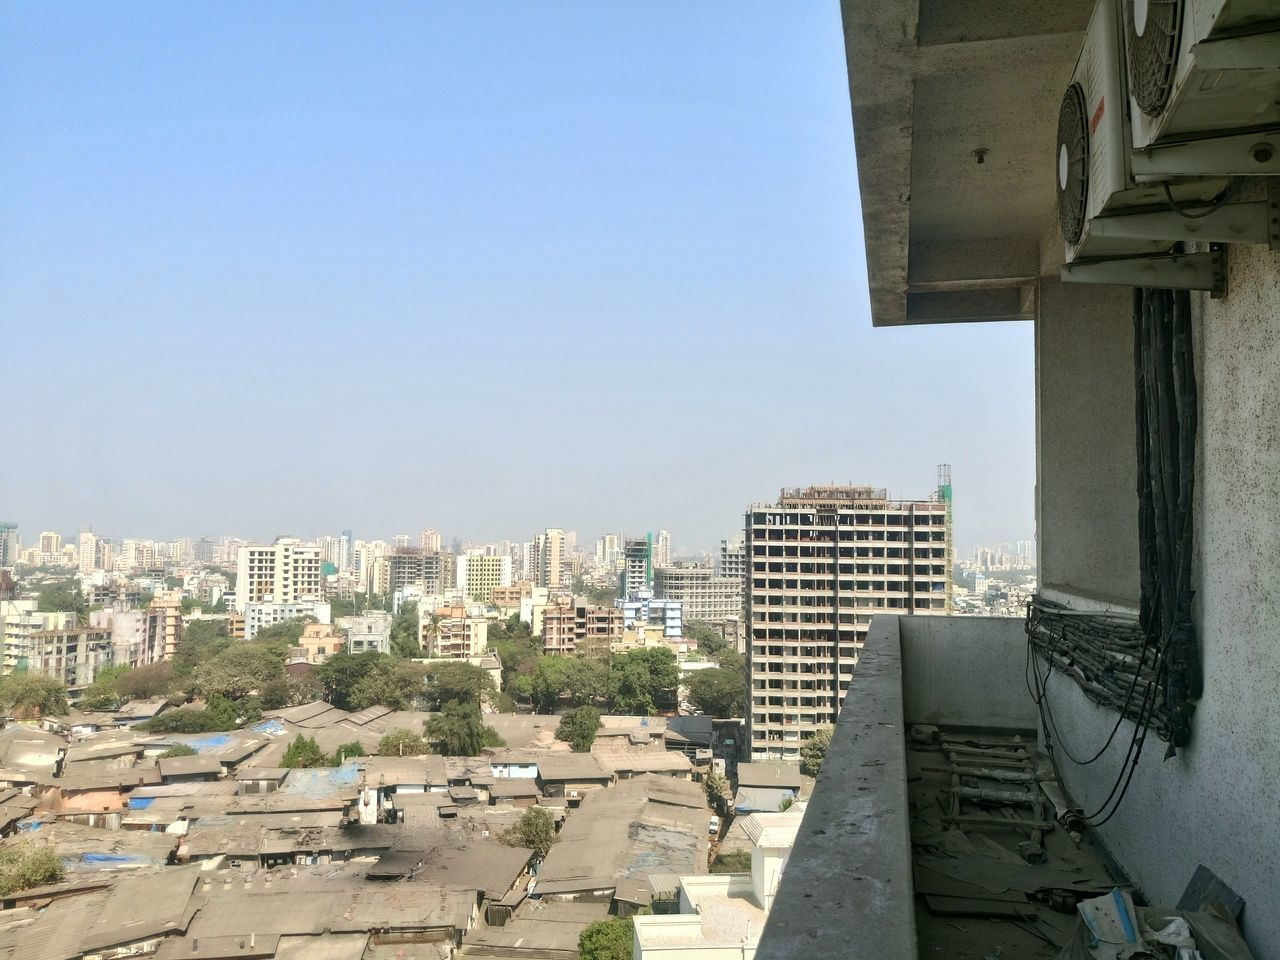 High Angle View Of Slum And City Against Clear Sky